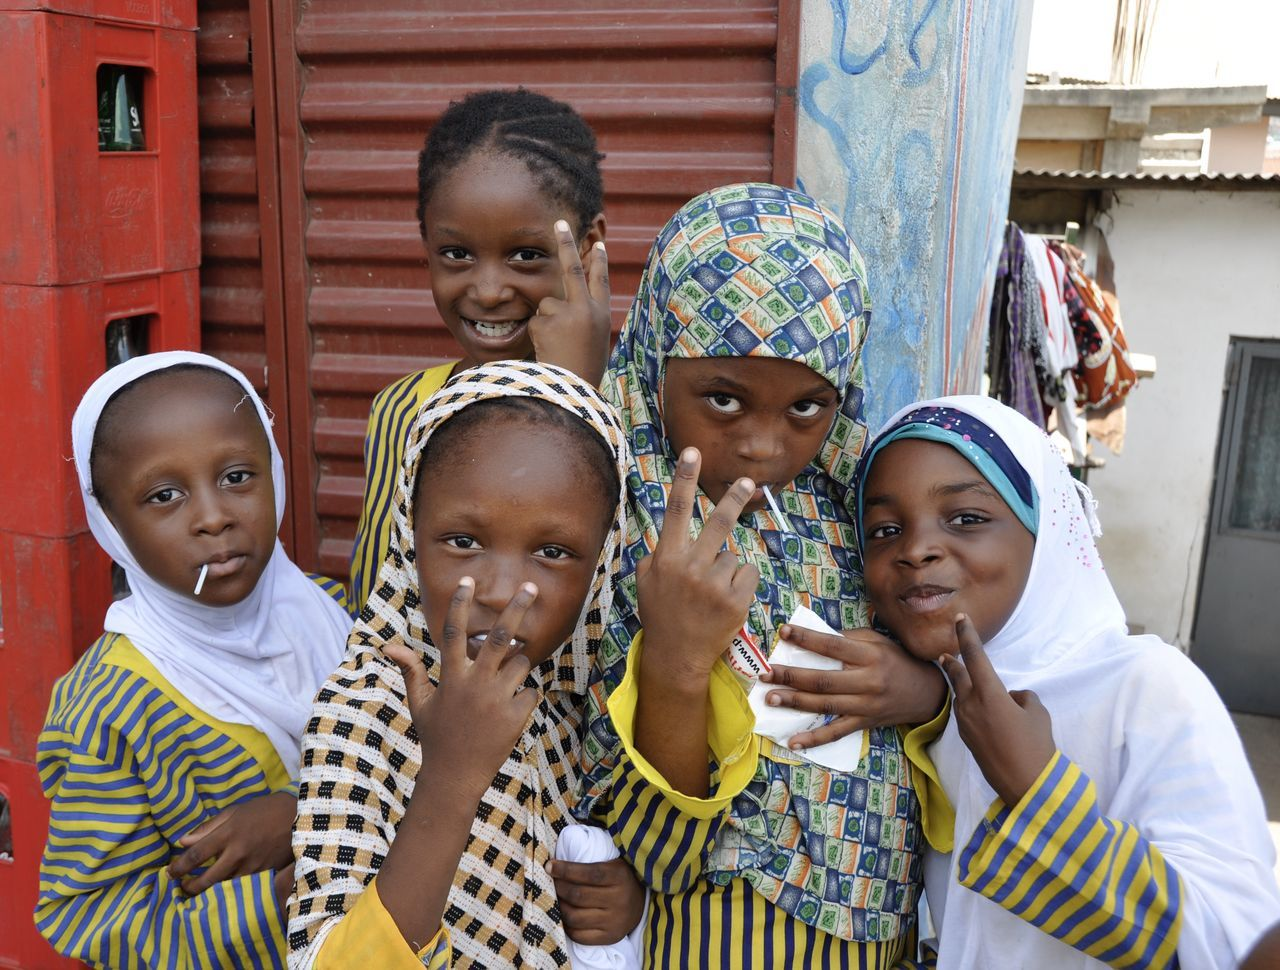 Africa African Bonding Childhood Cute Fun Ghana Girls Happiness Islam Looking At Camera Muslima Muslims Portrait Smiling Togetherness Showcase April Feel The Journey